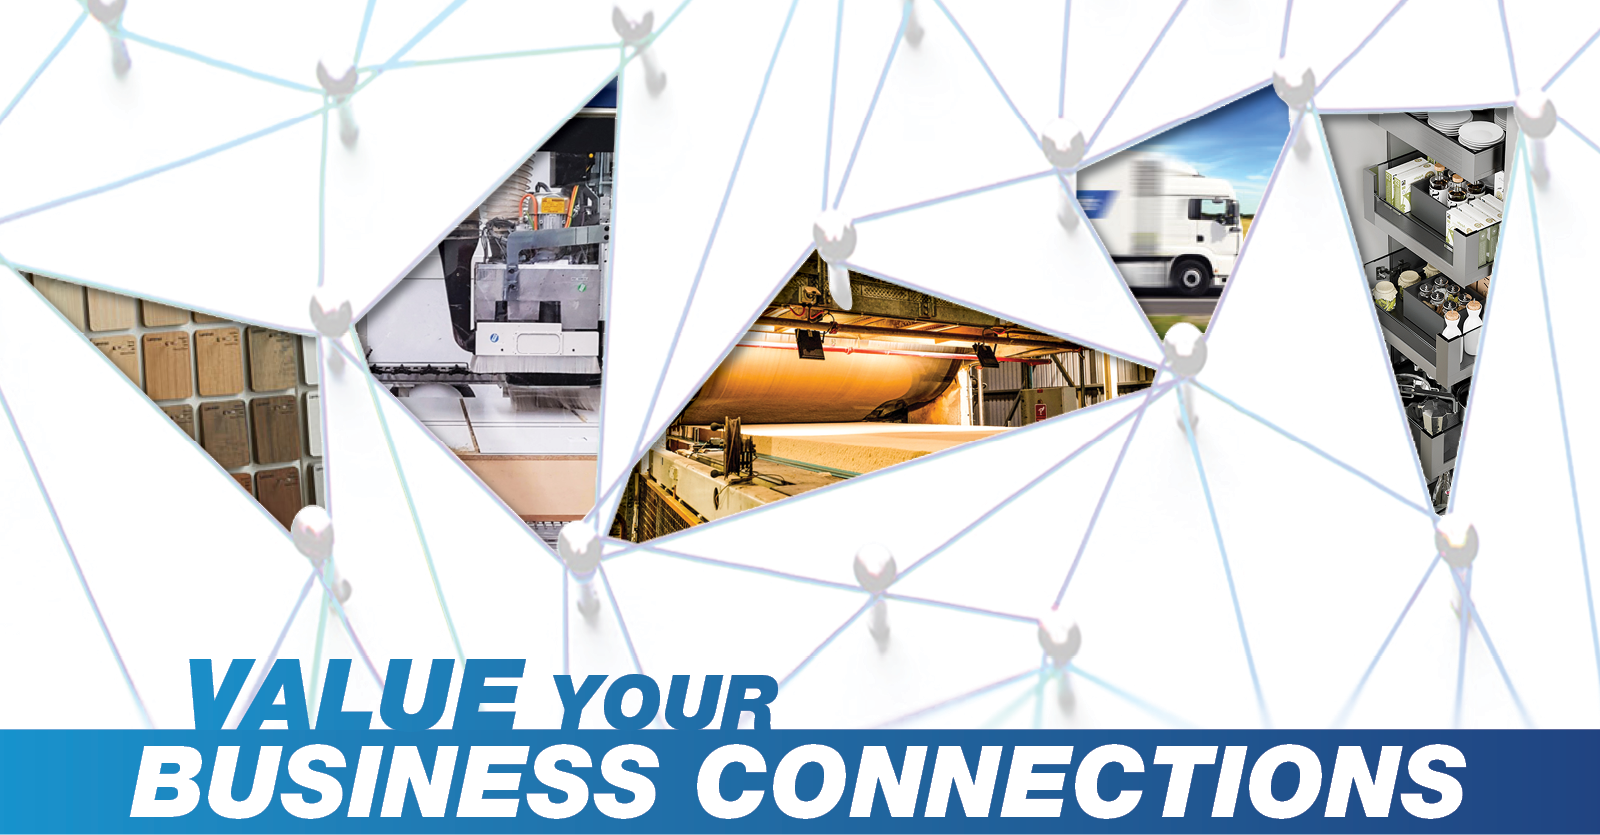 value your business connections with 5 images